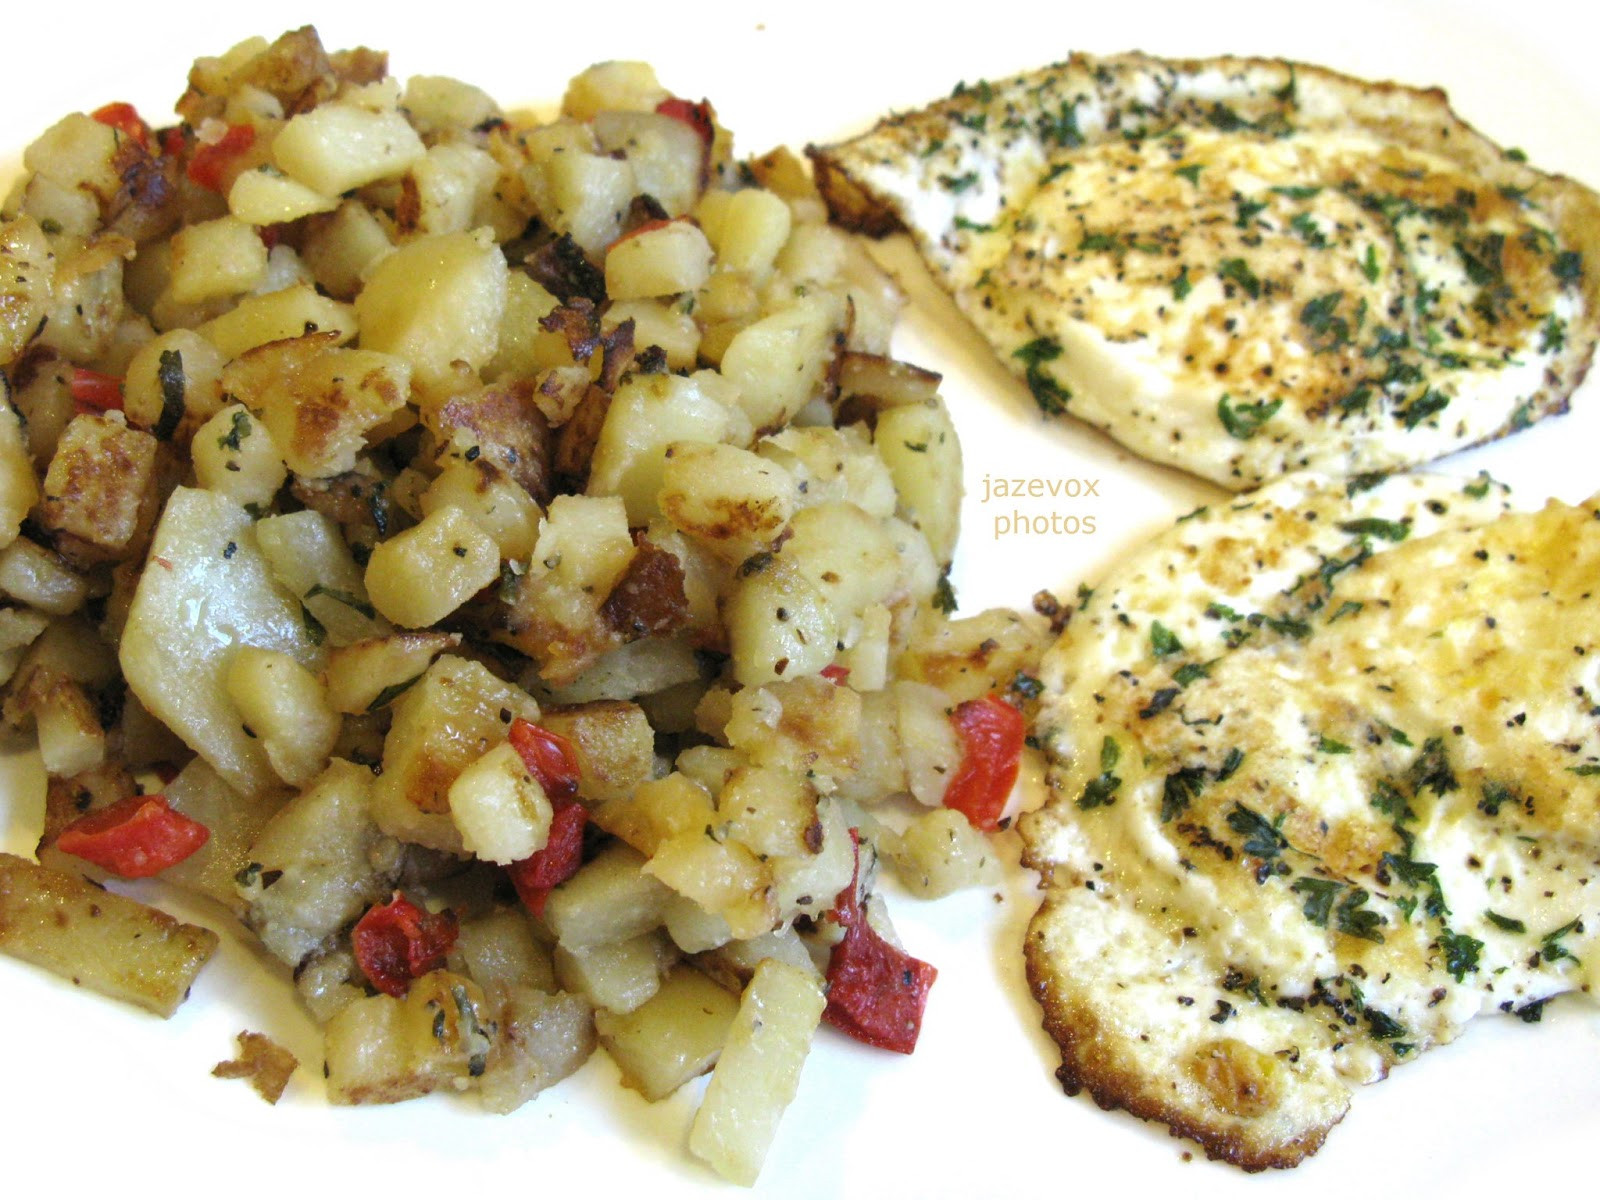 Diced Breakfast Potatoes  HomeyCircle Diced Potatoes And Over Easy Eggs For A Good